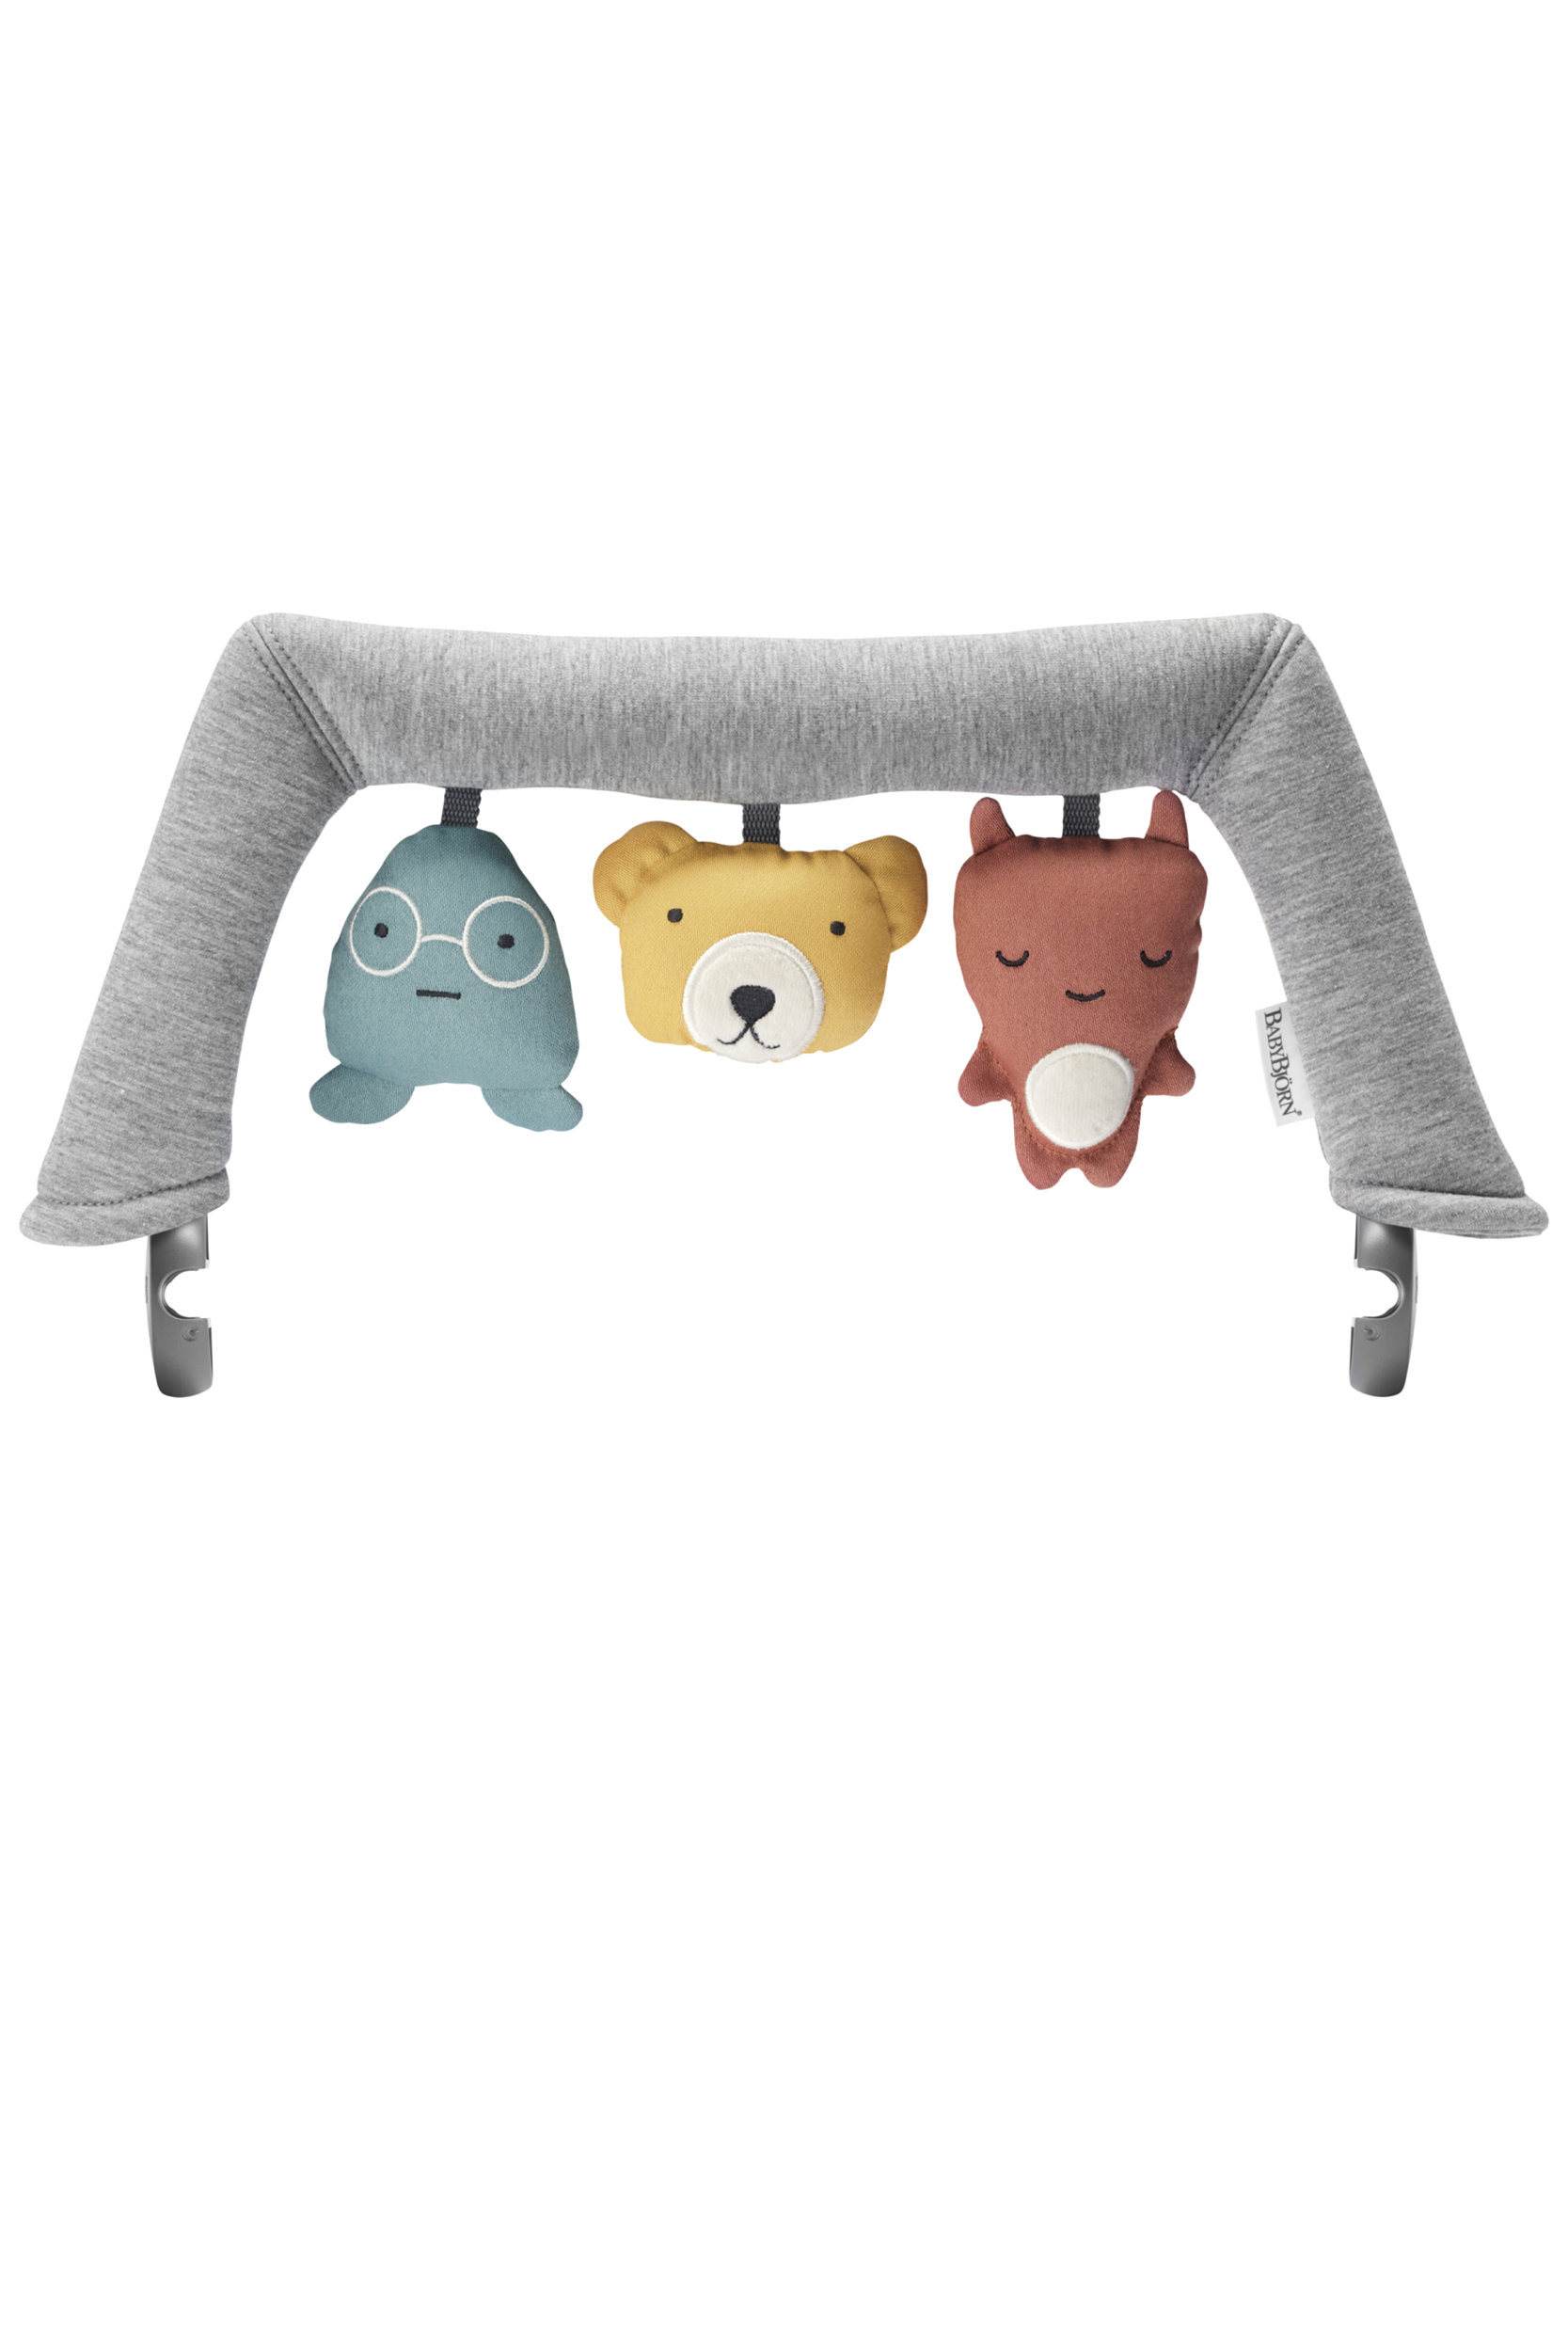 New toy for Baby Bouncer - Soft Friends - BABYBJÖRN